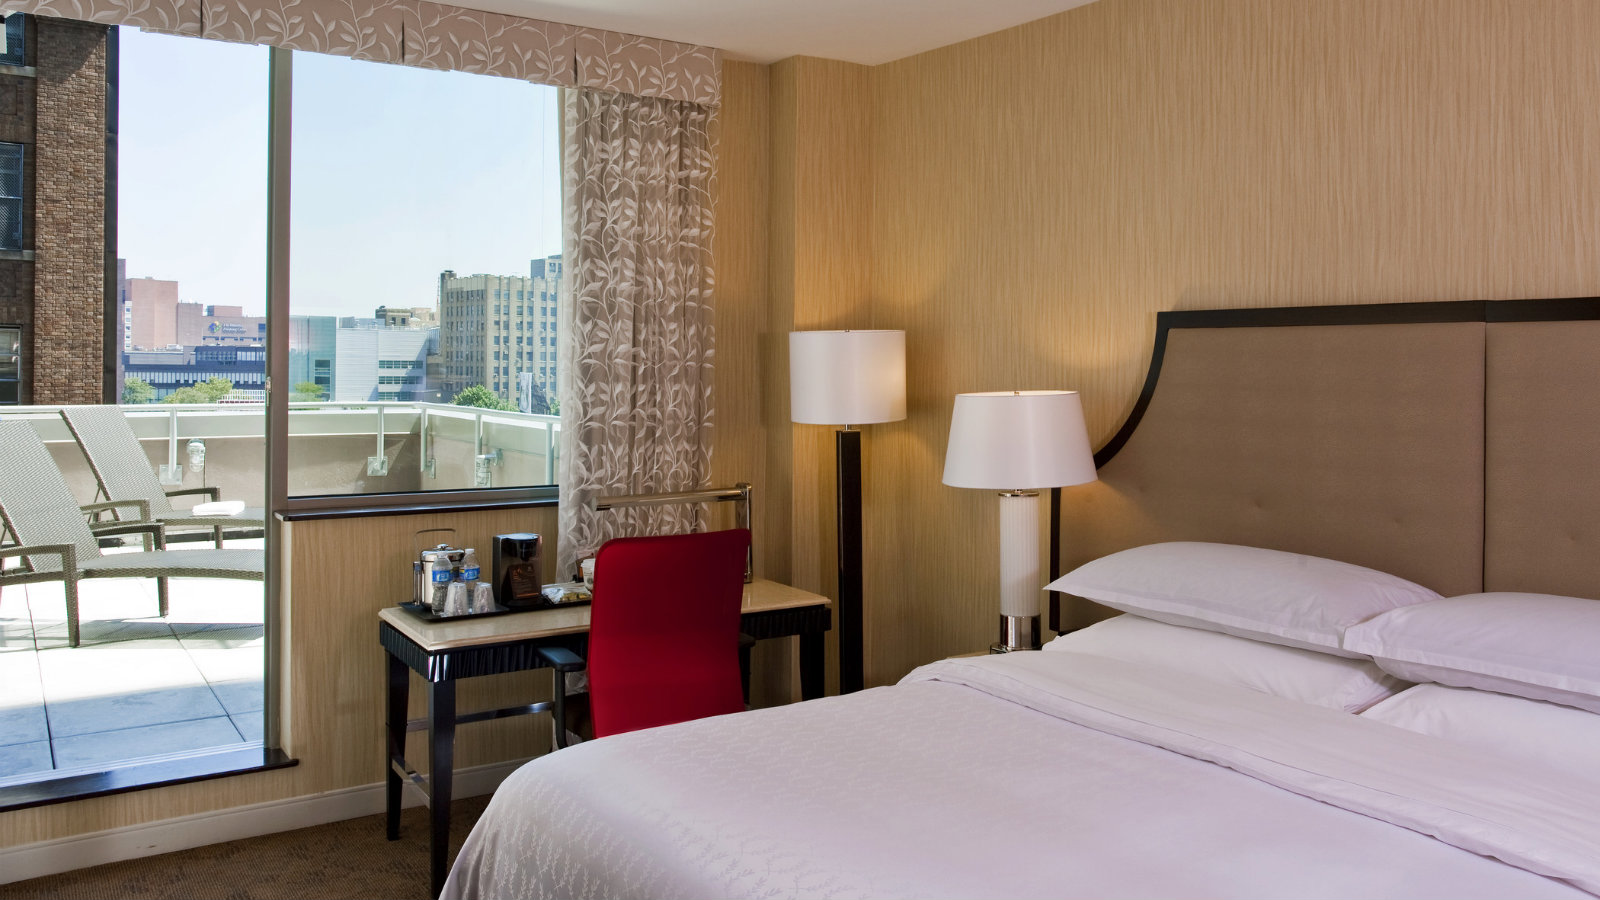 Brooklyn Hotel Features - Sheraton Sleep Experience